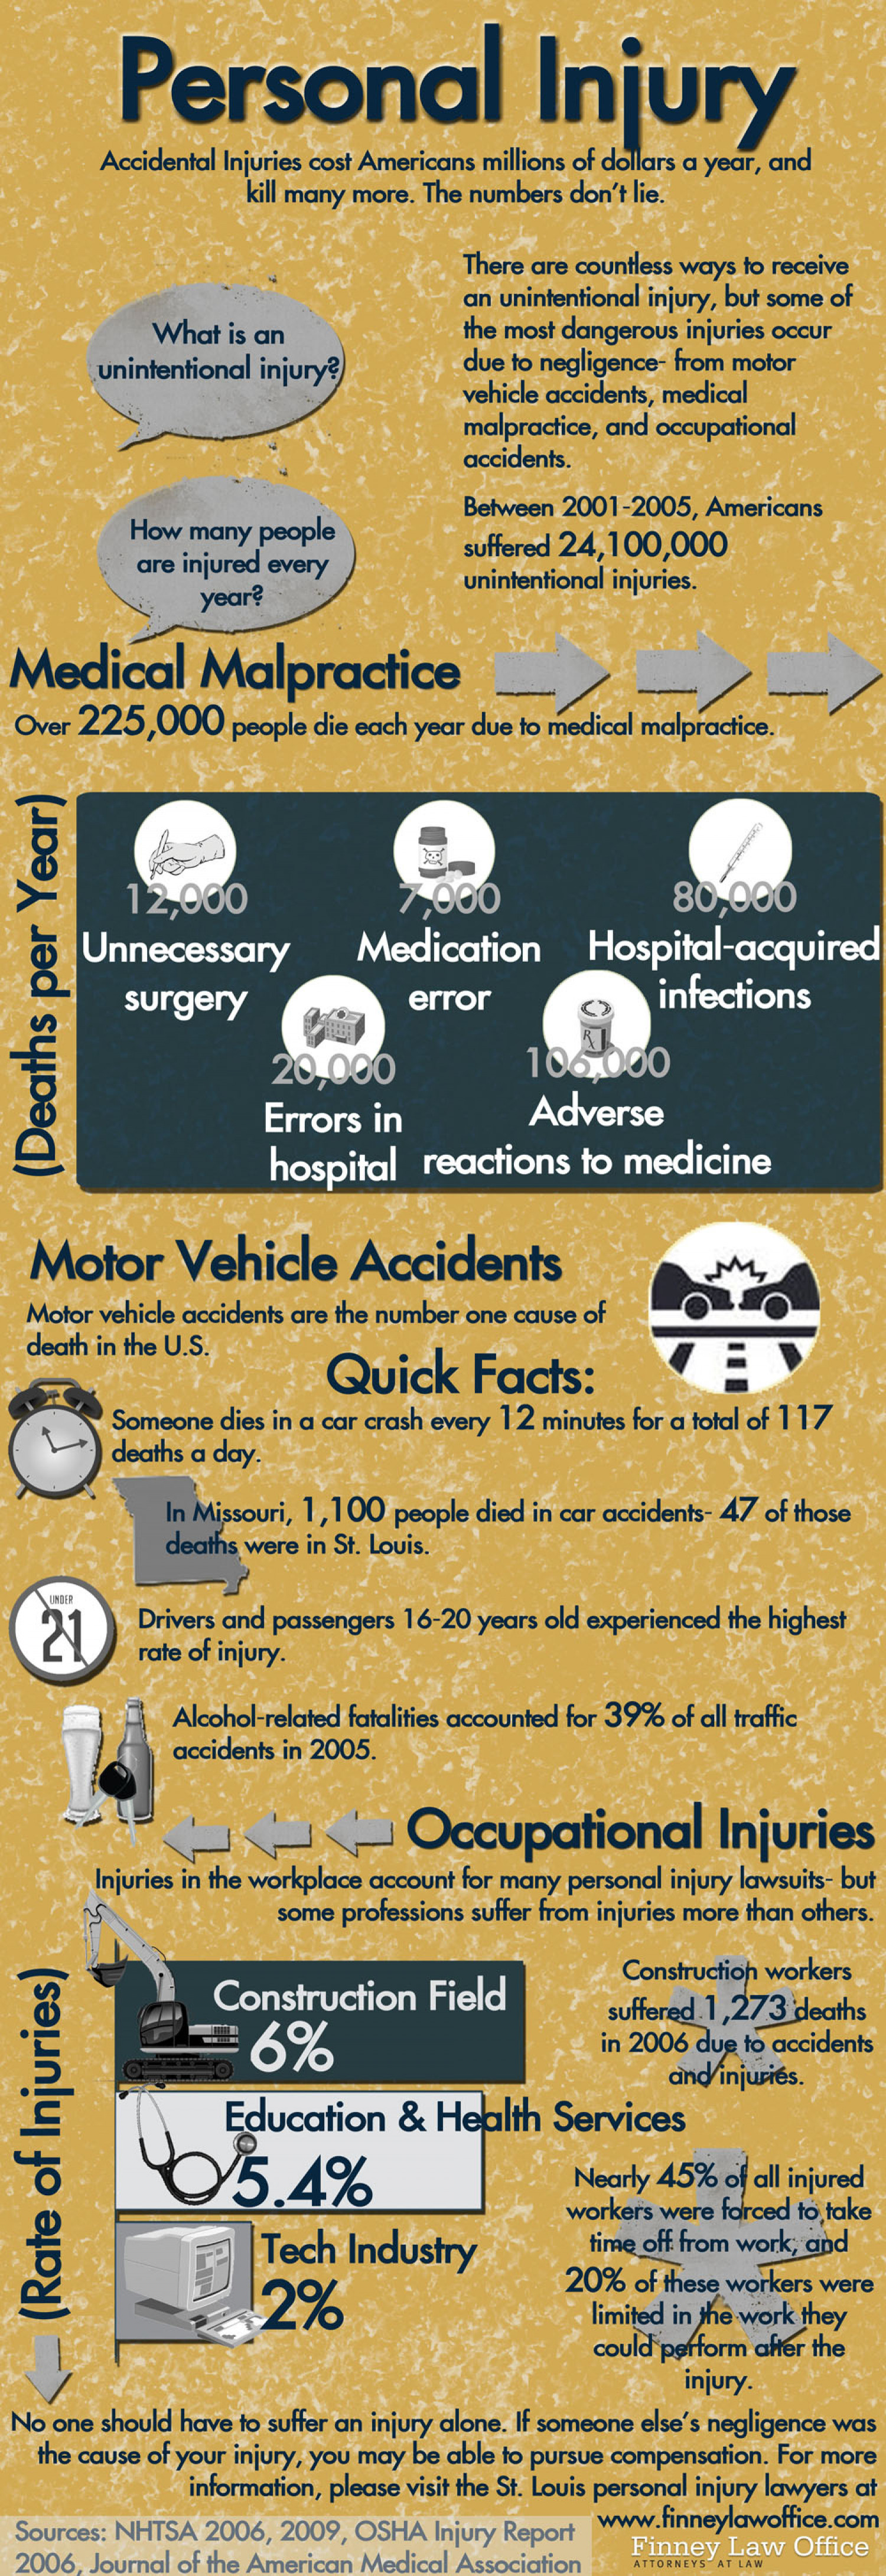 Personal Injury Costs: The Numbers Don't Lie Infographic